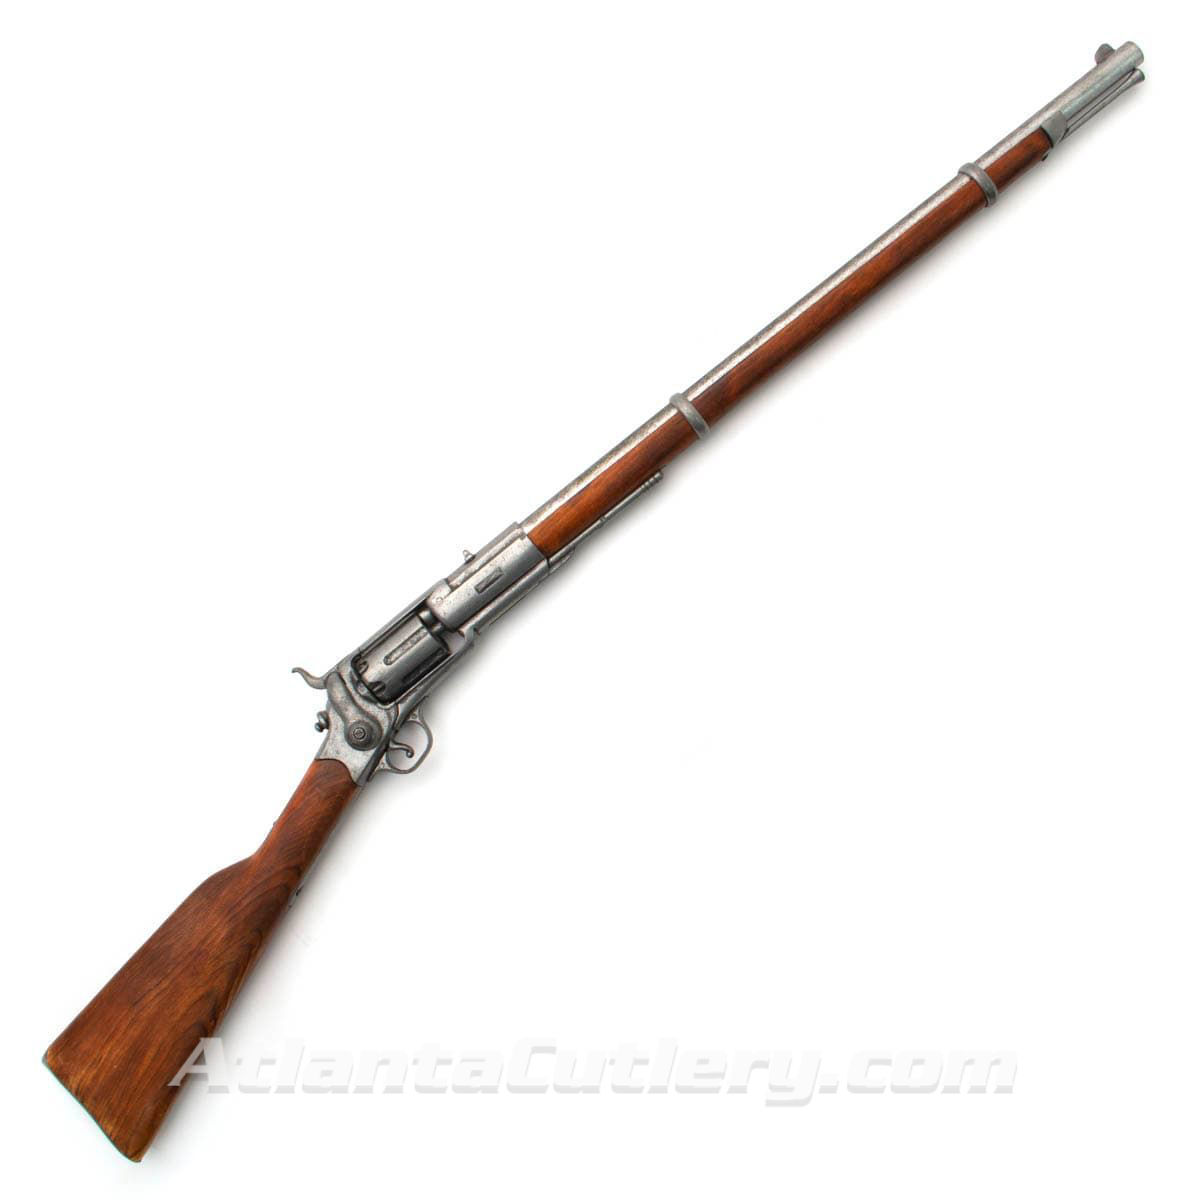 nonfiring replica M1855 Percussion Rifle Revolver with wood stock and metal working trigger, sidehammer and rotating cylinder